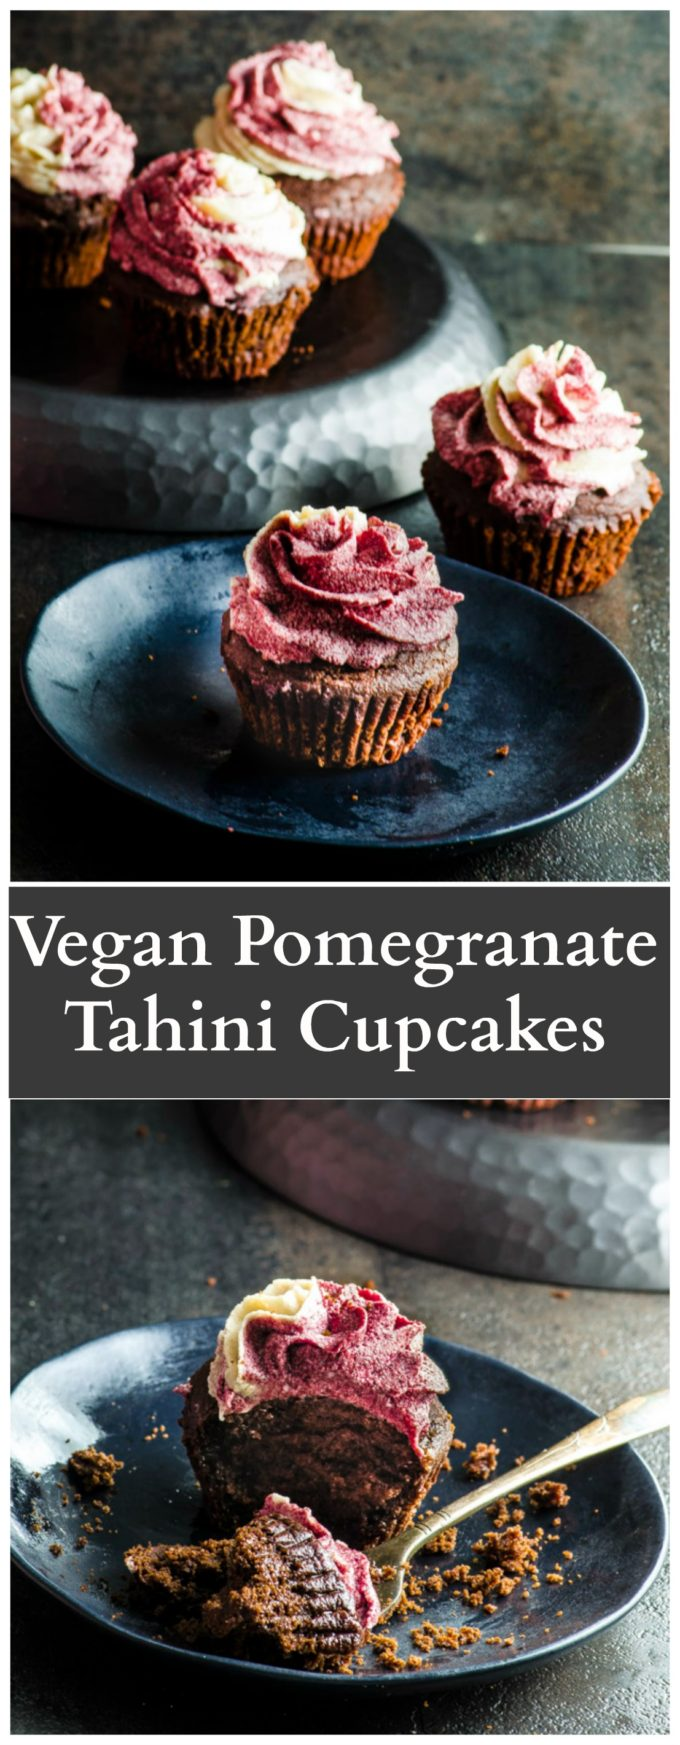 Vegan Pomegranate Tahini Cupcakes - rich and moist chocolate cake topped with creamy tahini and pomegranate molasses icing.